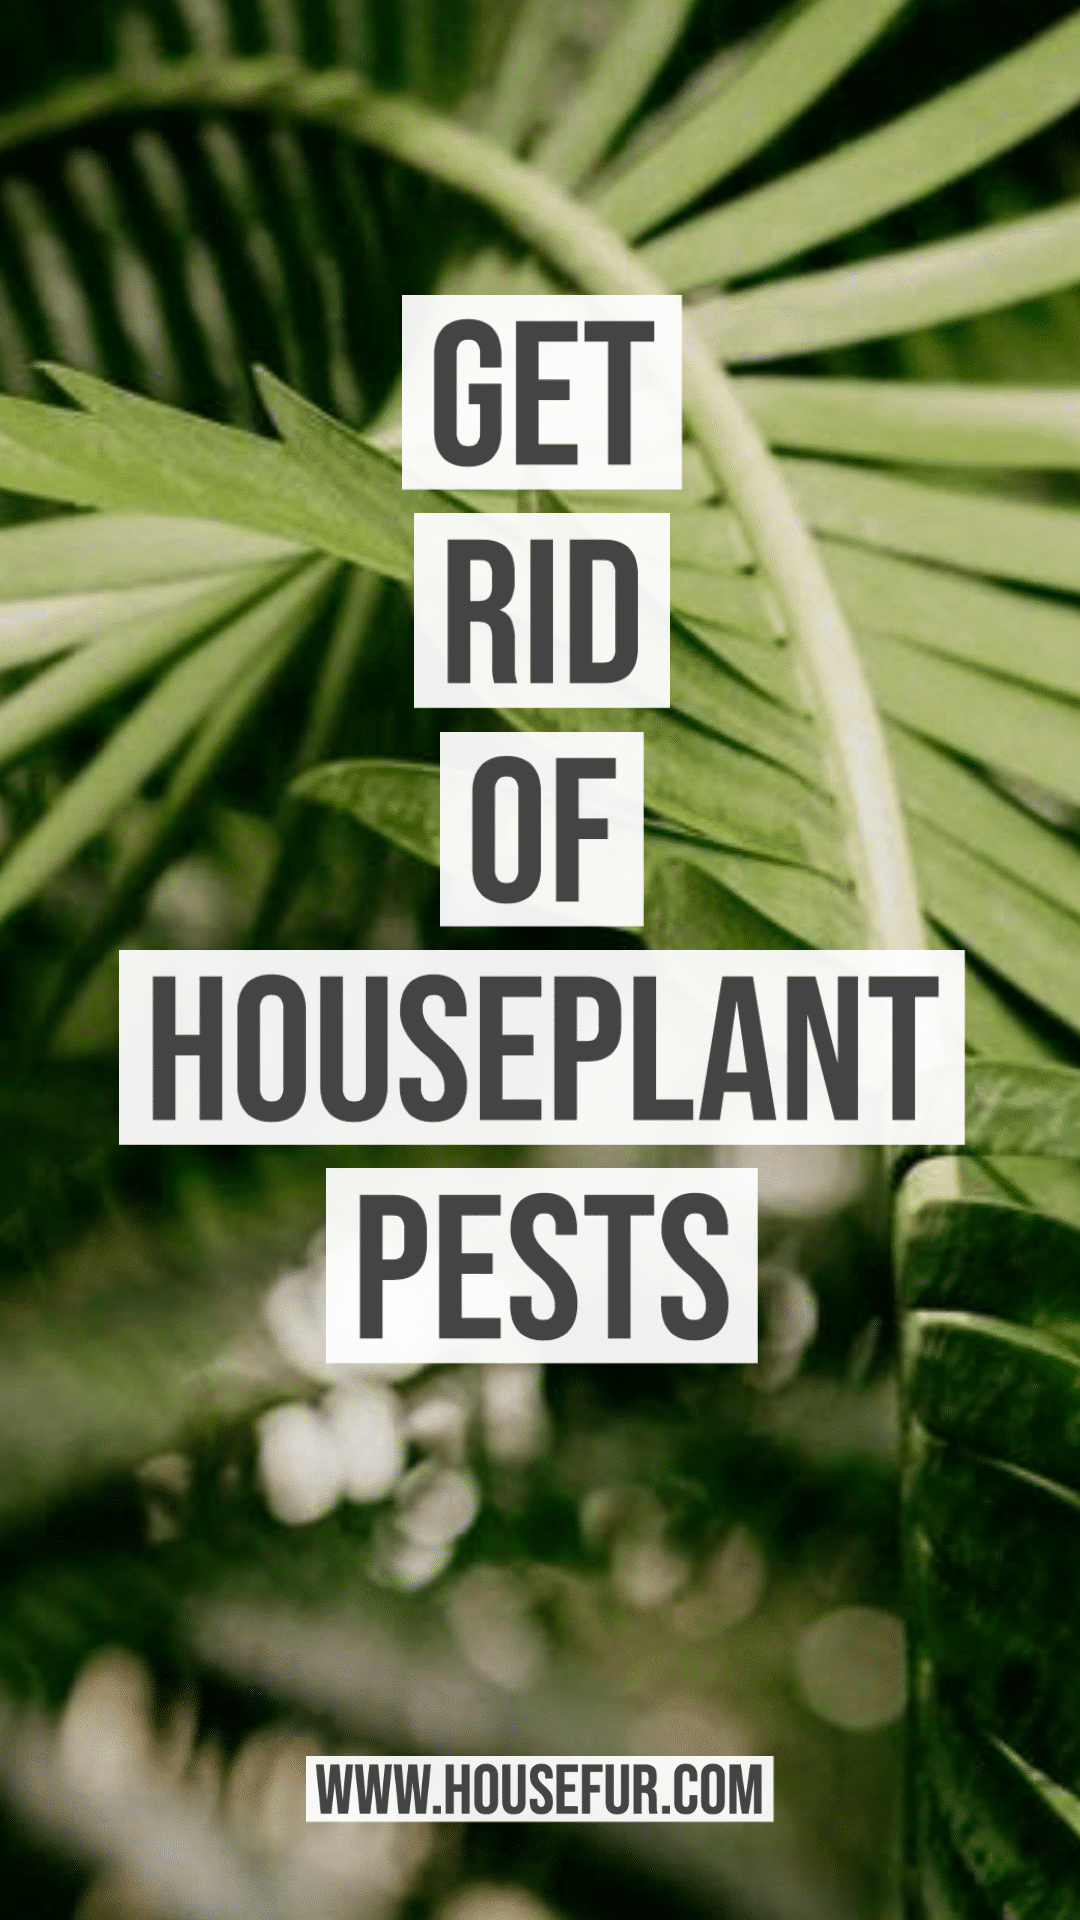 get rid of houseplant pests